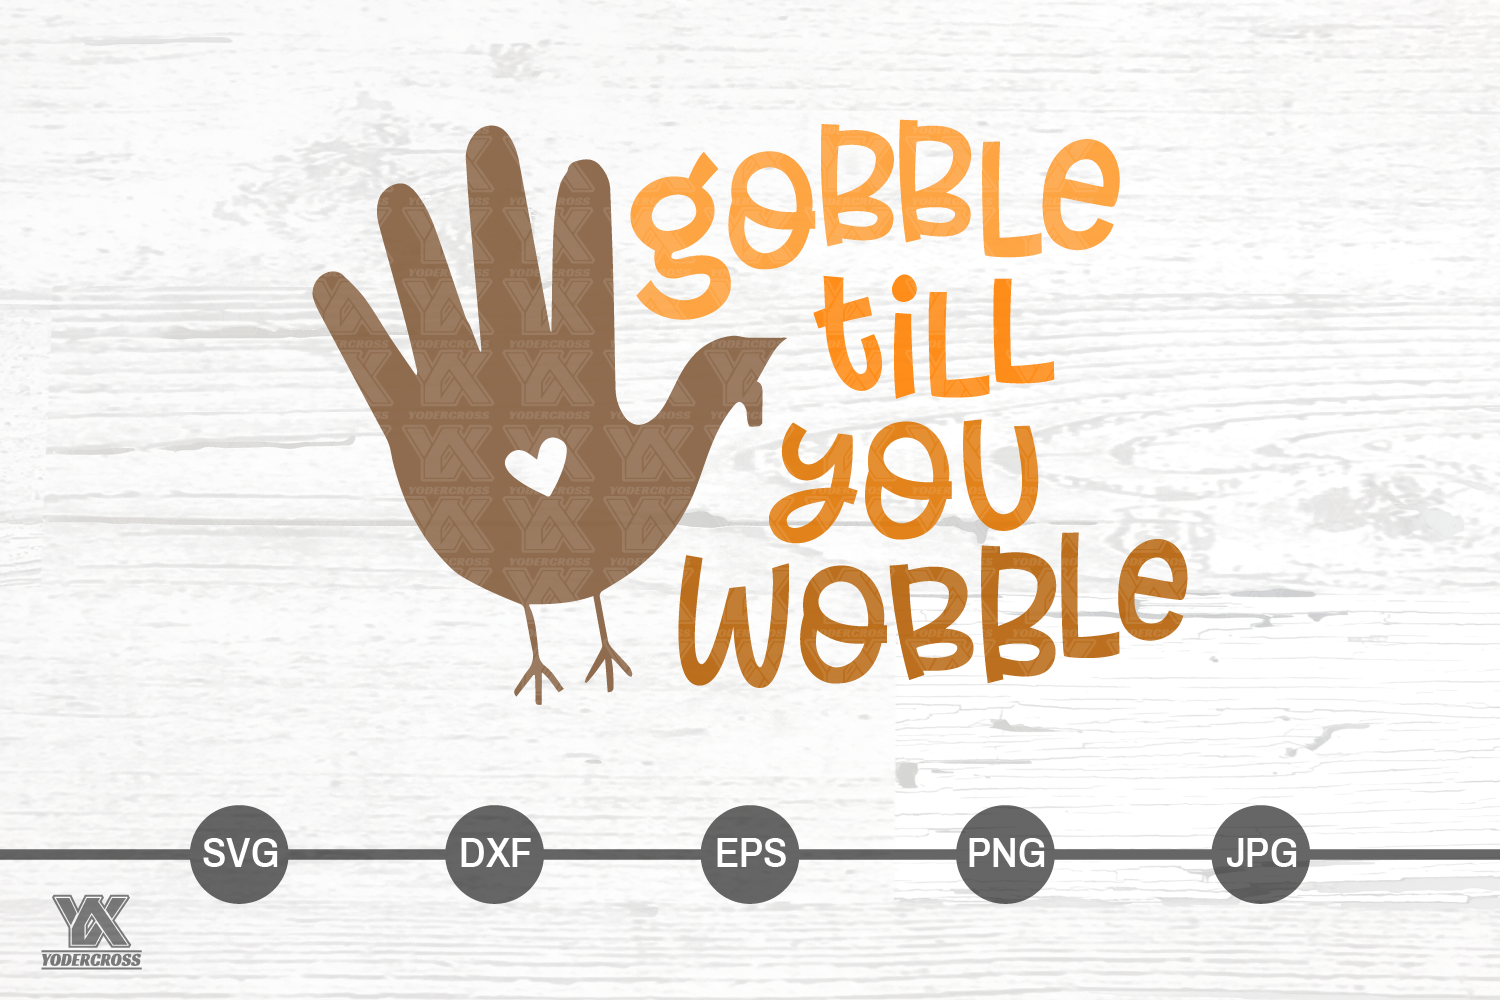 Gobble Till You Wobble Thanksgiving SVG example image 3